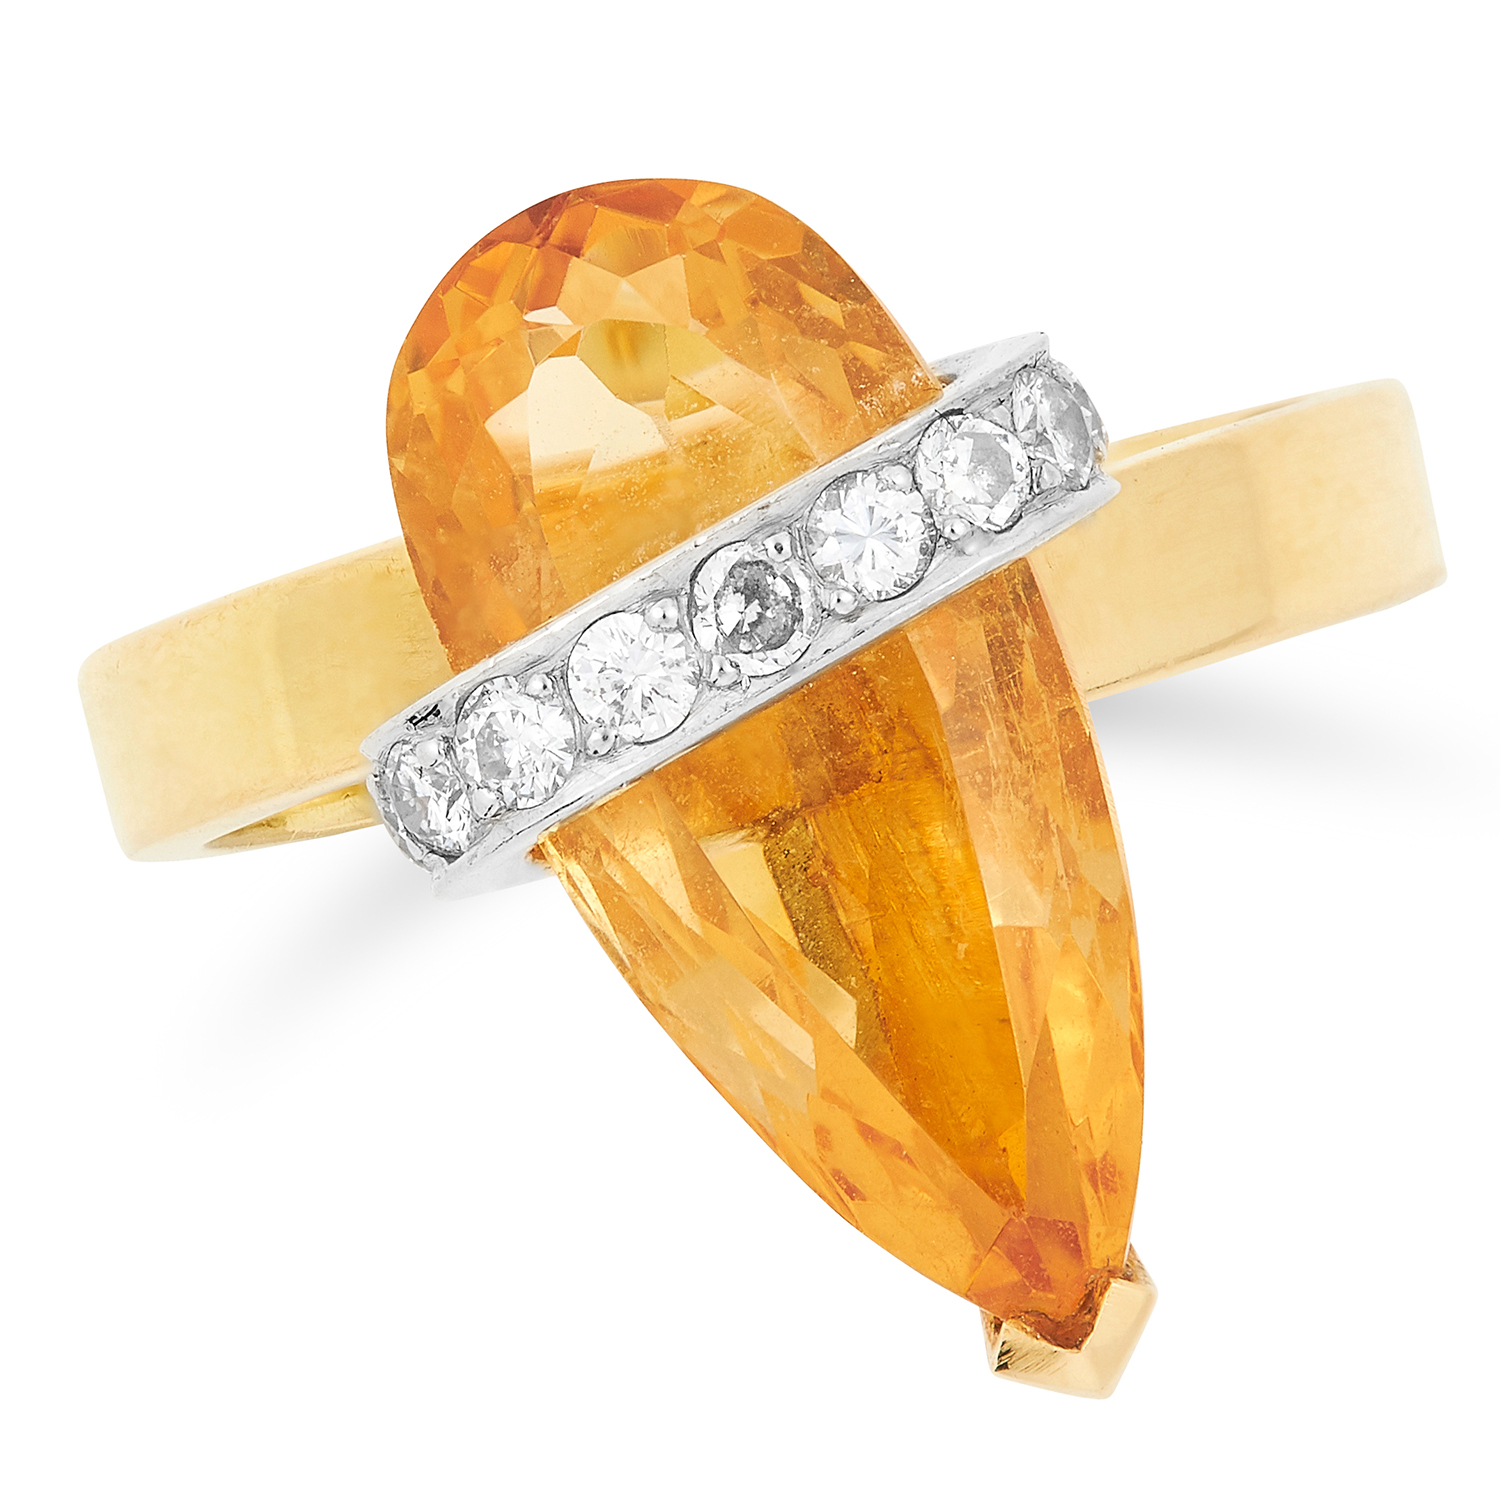 A TOPAZ AND DIAMOND RING, ANDREW GRIMA, CIRCA 1975 set with a pear cut imperial topaz and round